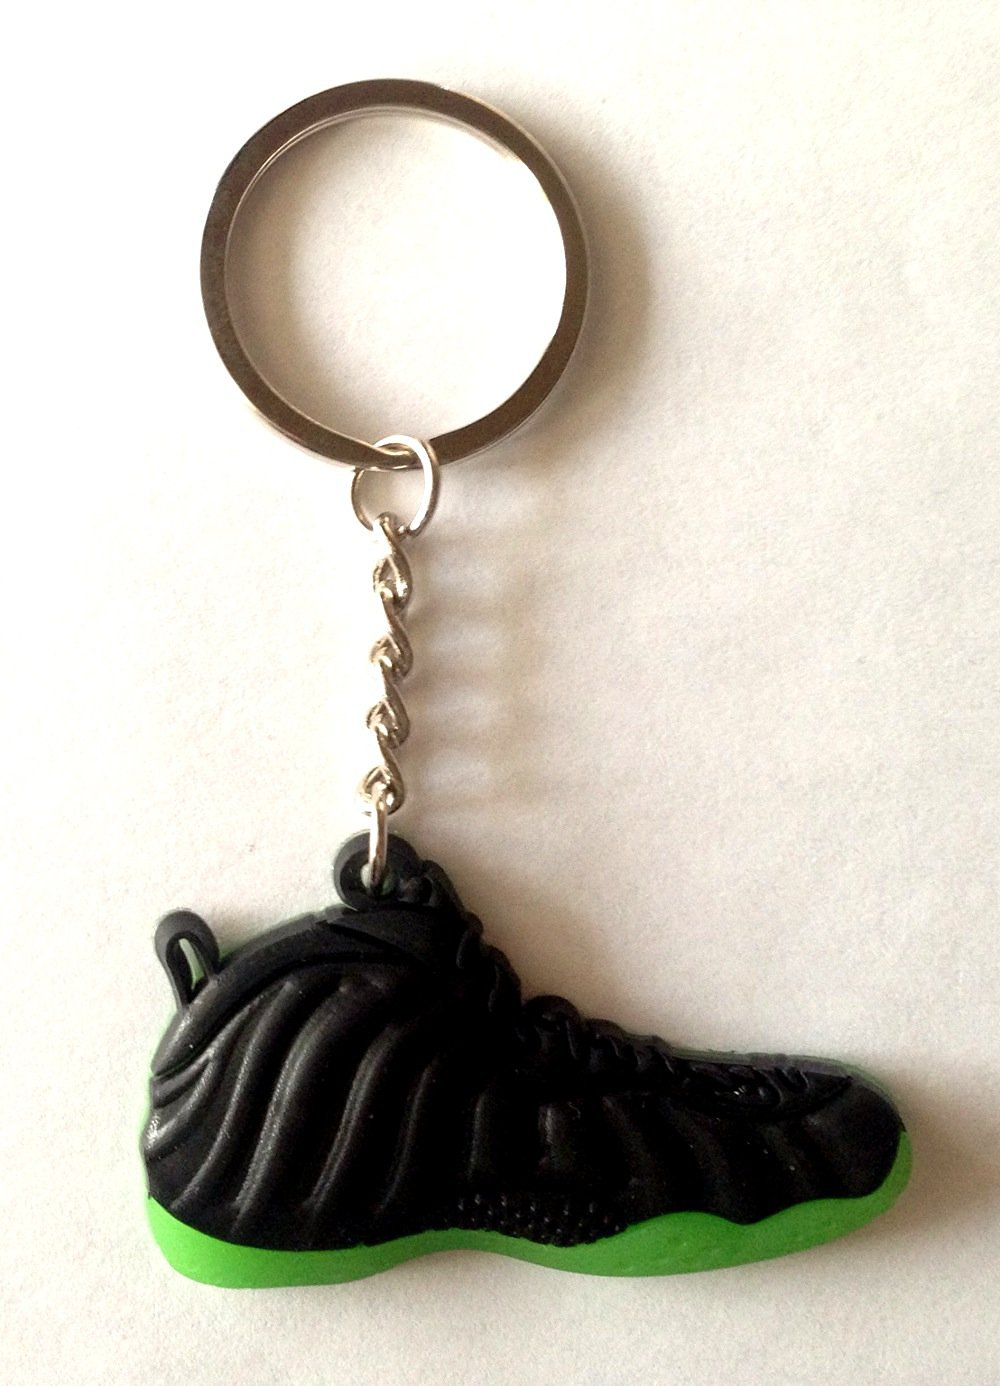 34f1dc83c04 Foamposite One Pro Neo Lime Green Penny Hardaway Sneakers Shoes Keychain  Keyring AJ 23 Retro Air